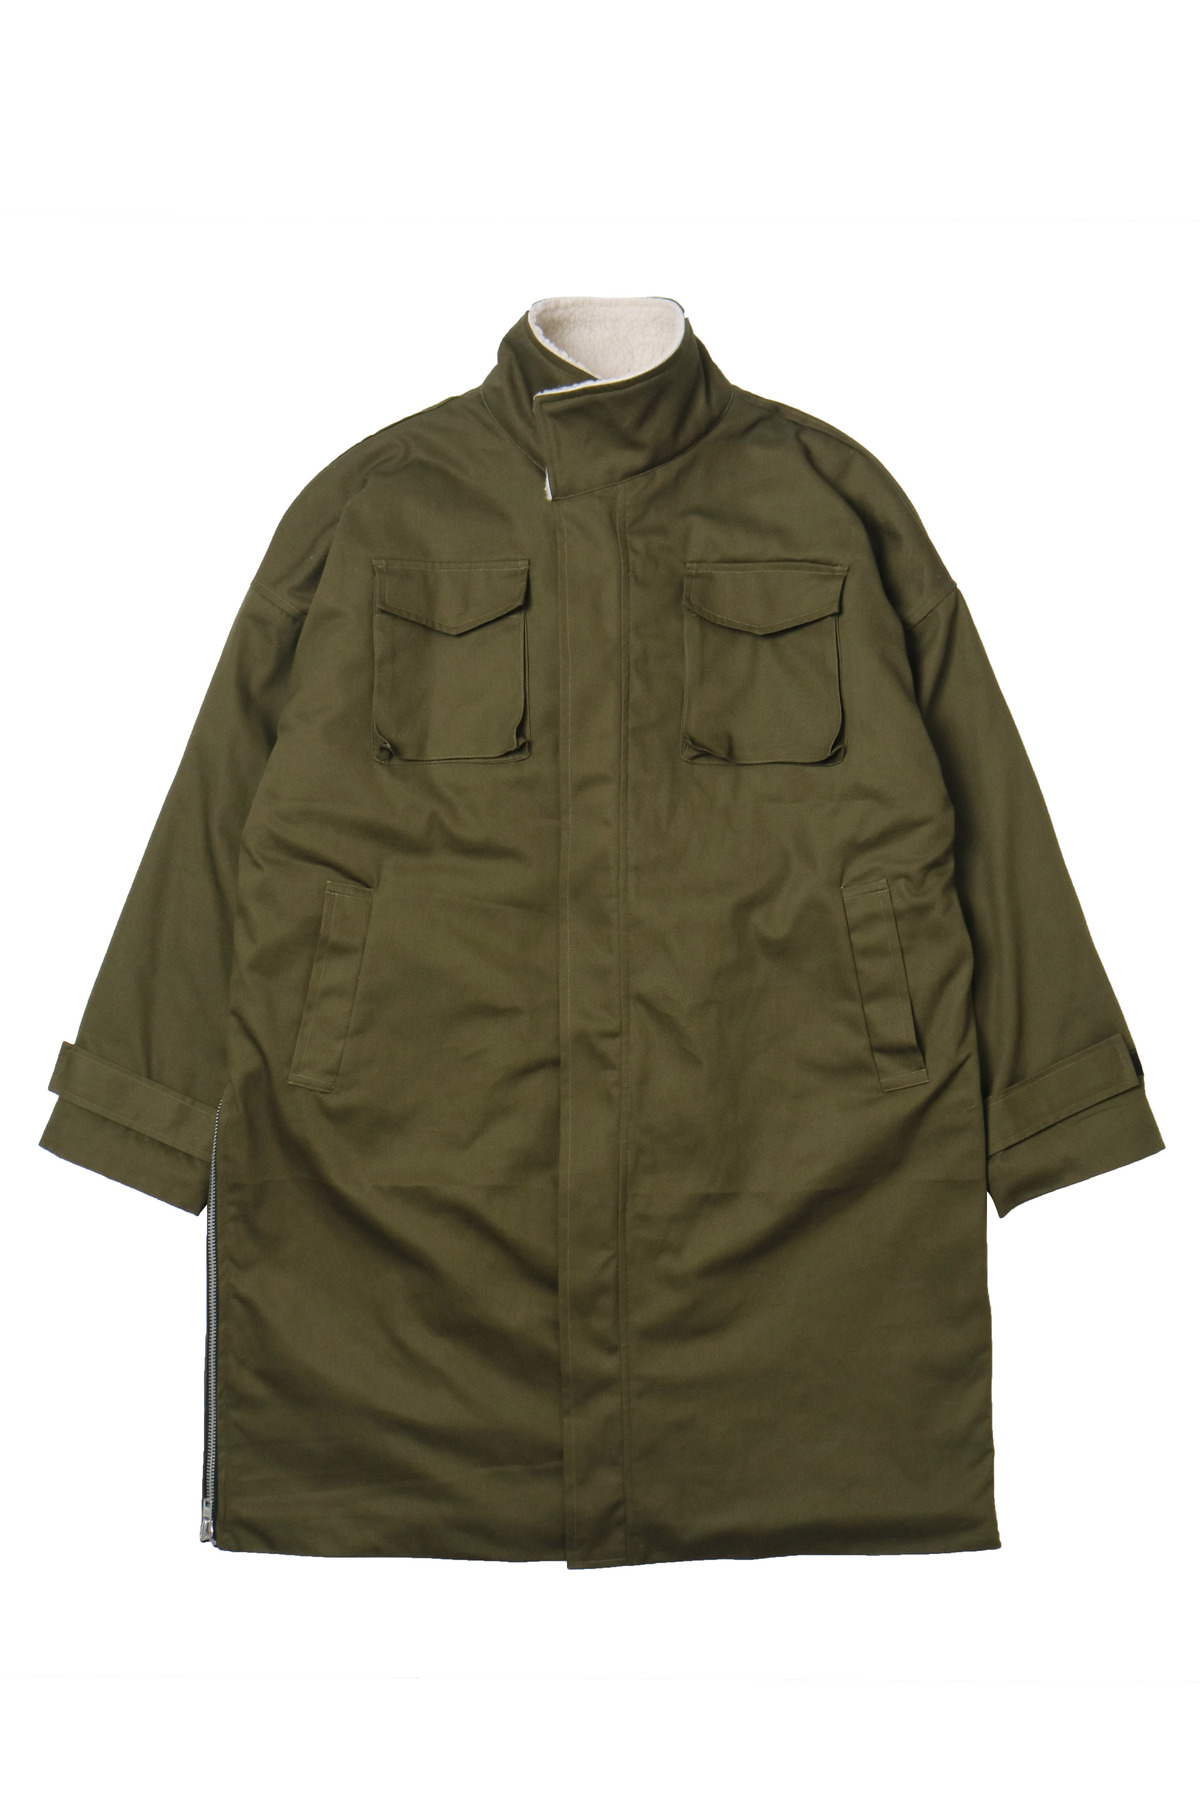 KHAKI SHERPA SIDE ZIP PARKA